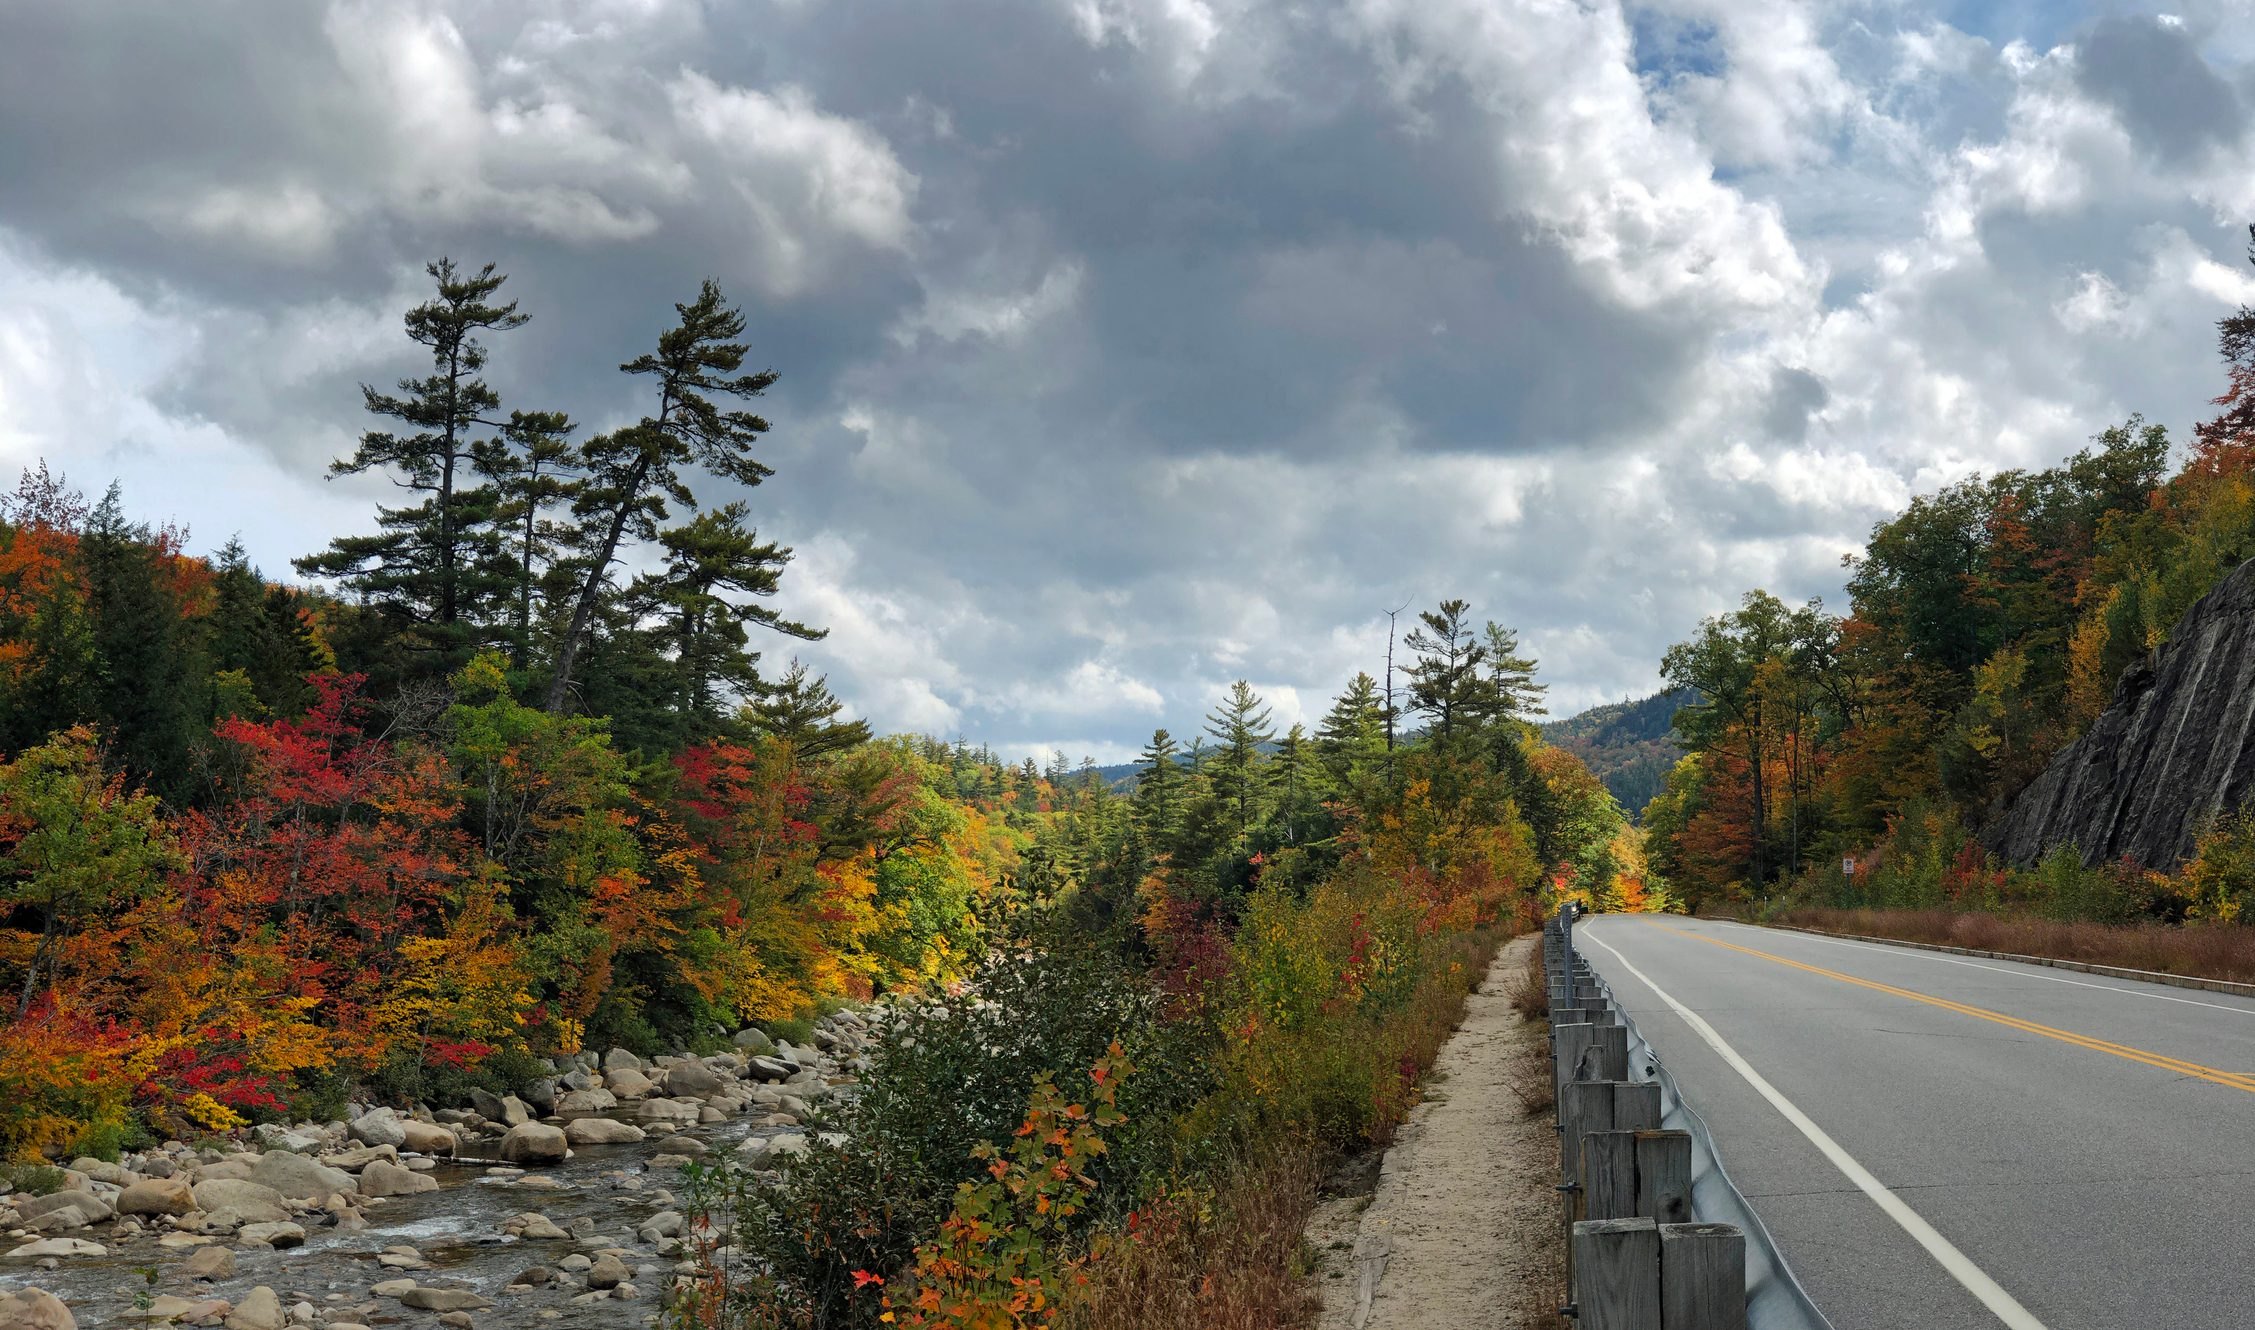 Kancamangus Highway in the New Hampshire White Mountains running alongside the Swift River during Autumn